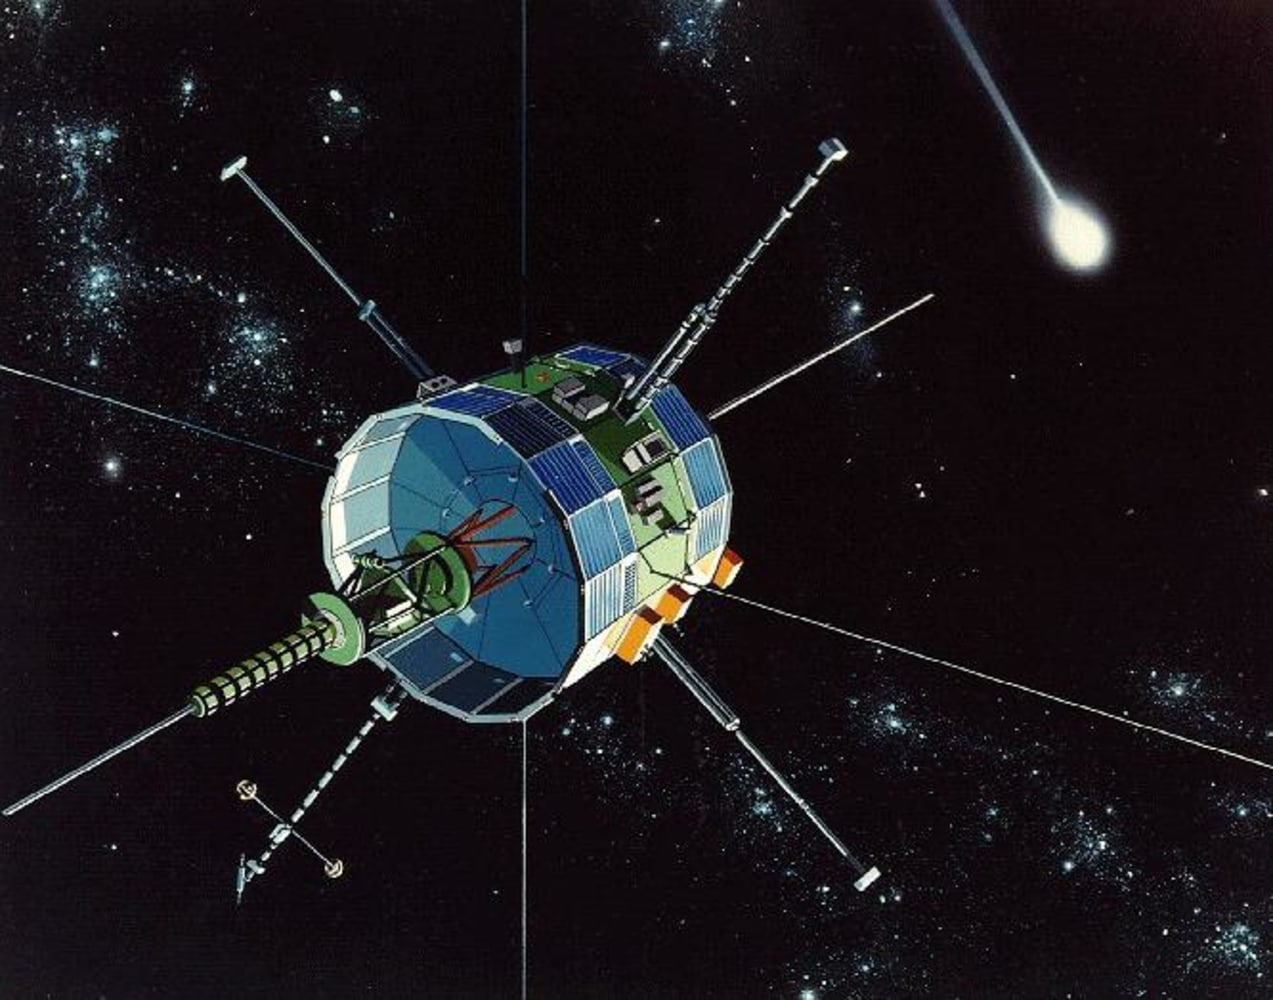 explorer spacecraft earth pictures of 6 - photo #15